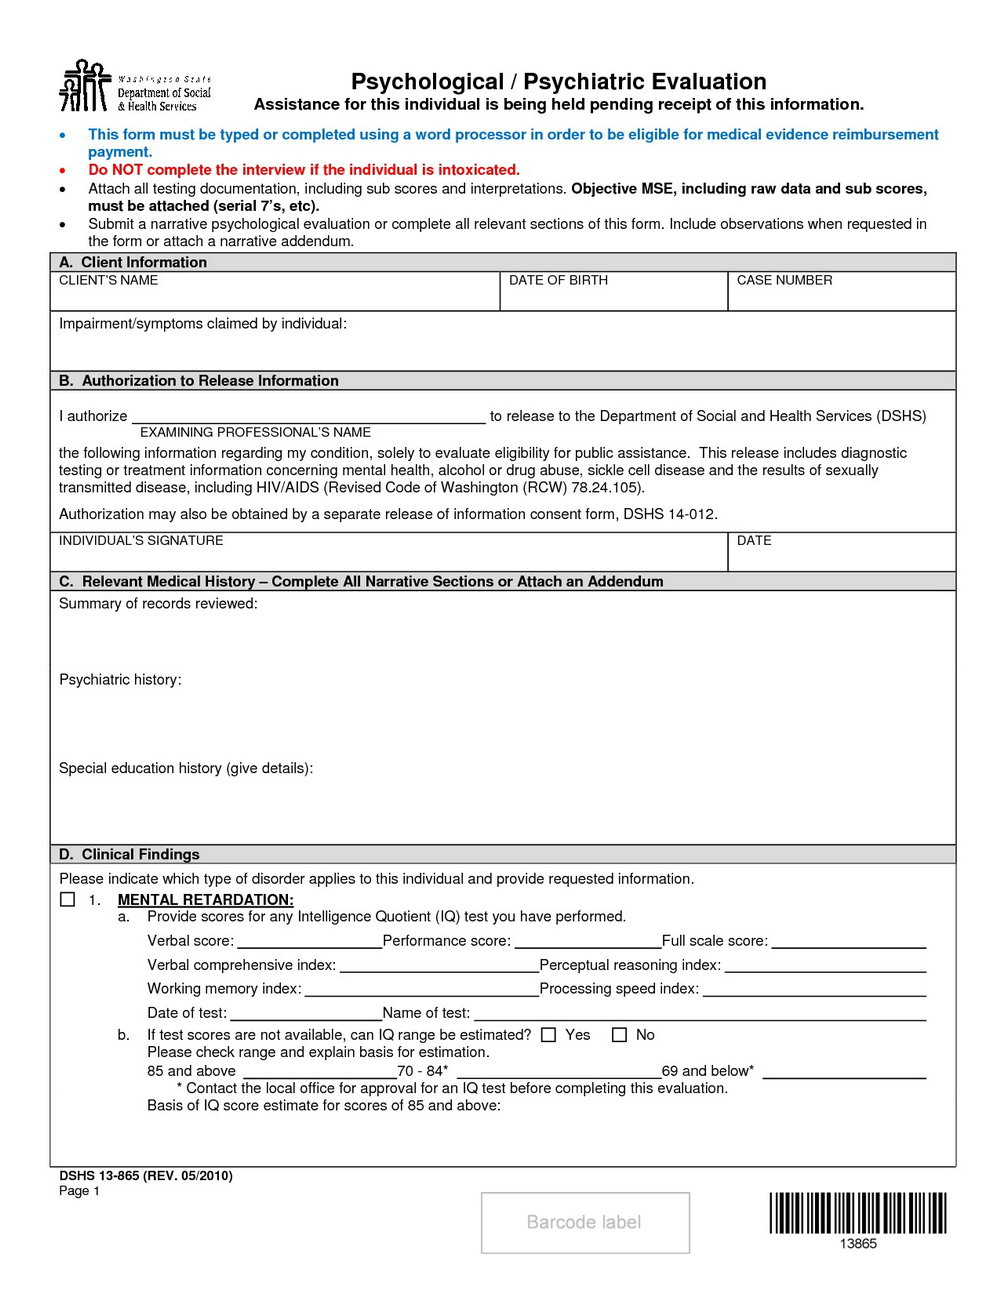 Psychiatric Evaluation Form Template